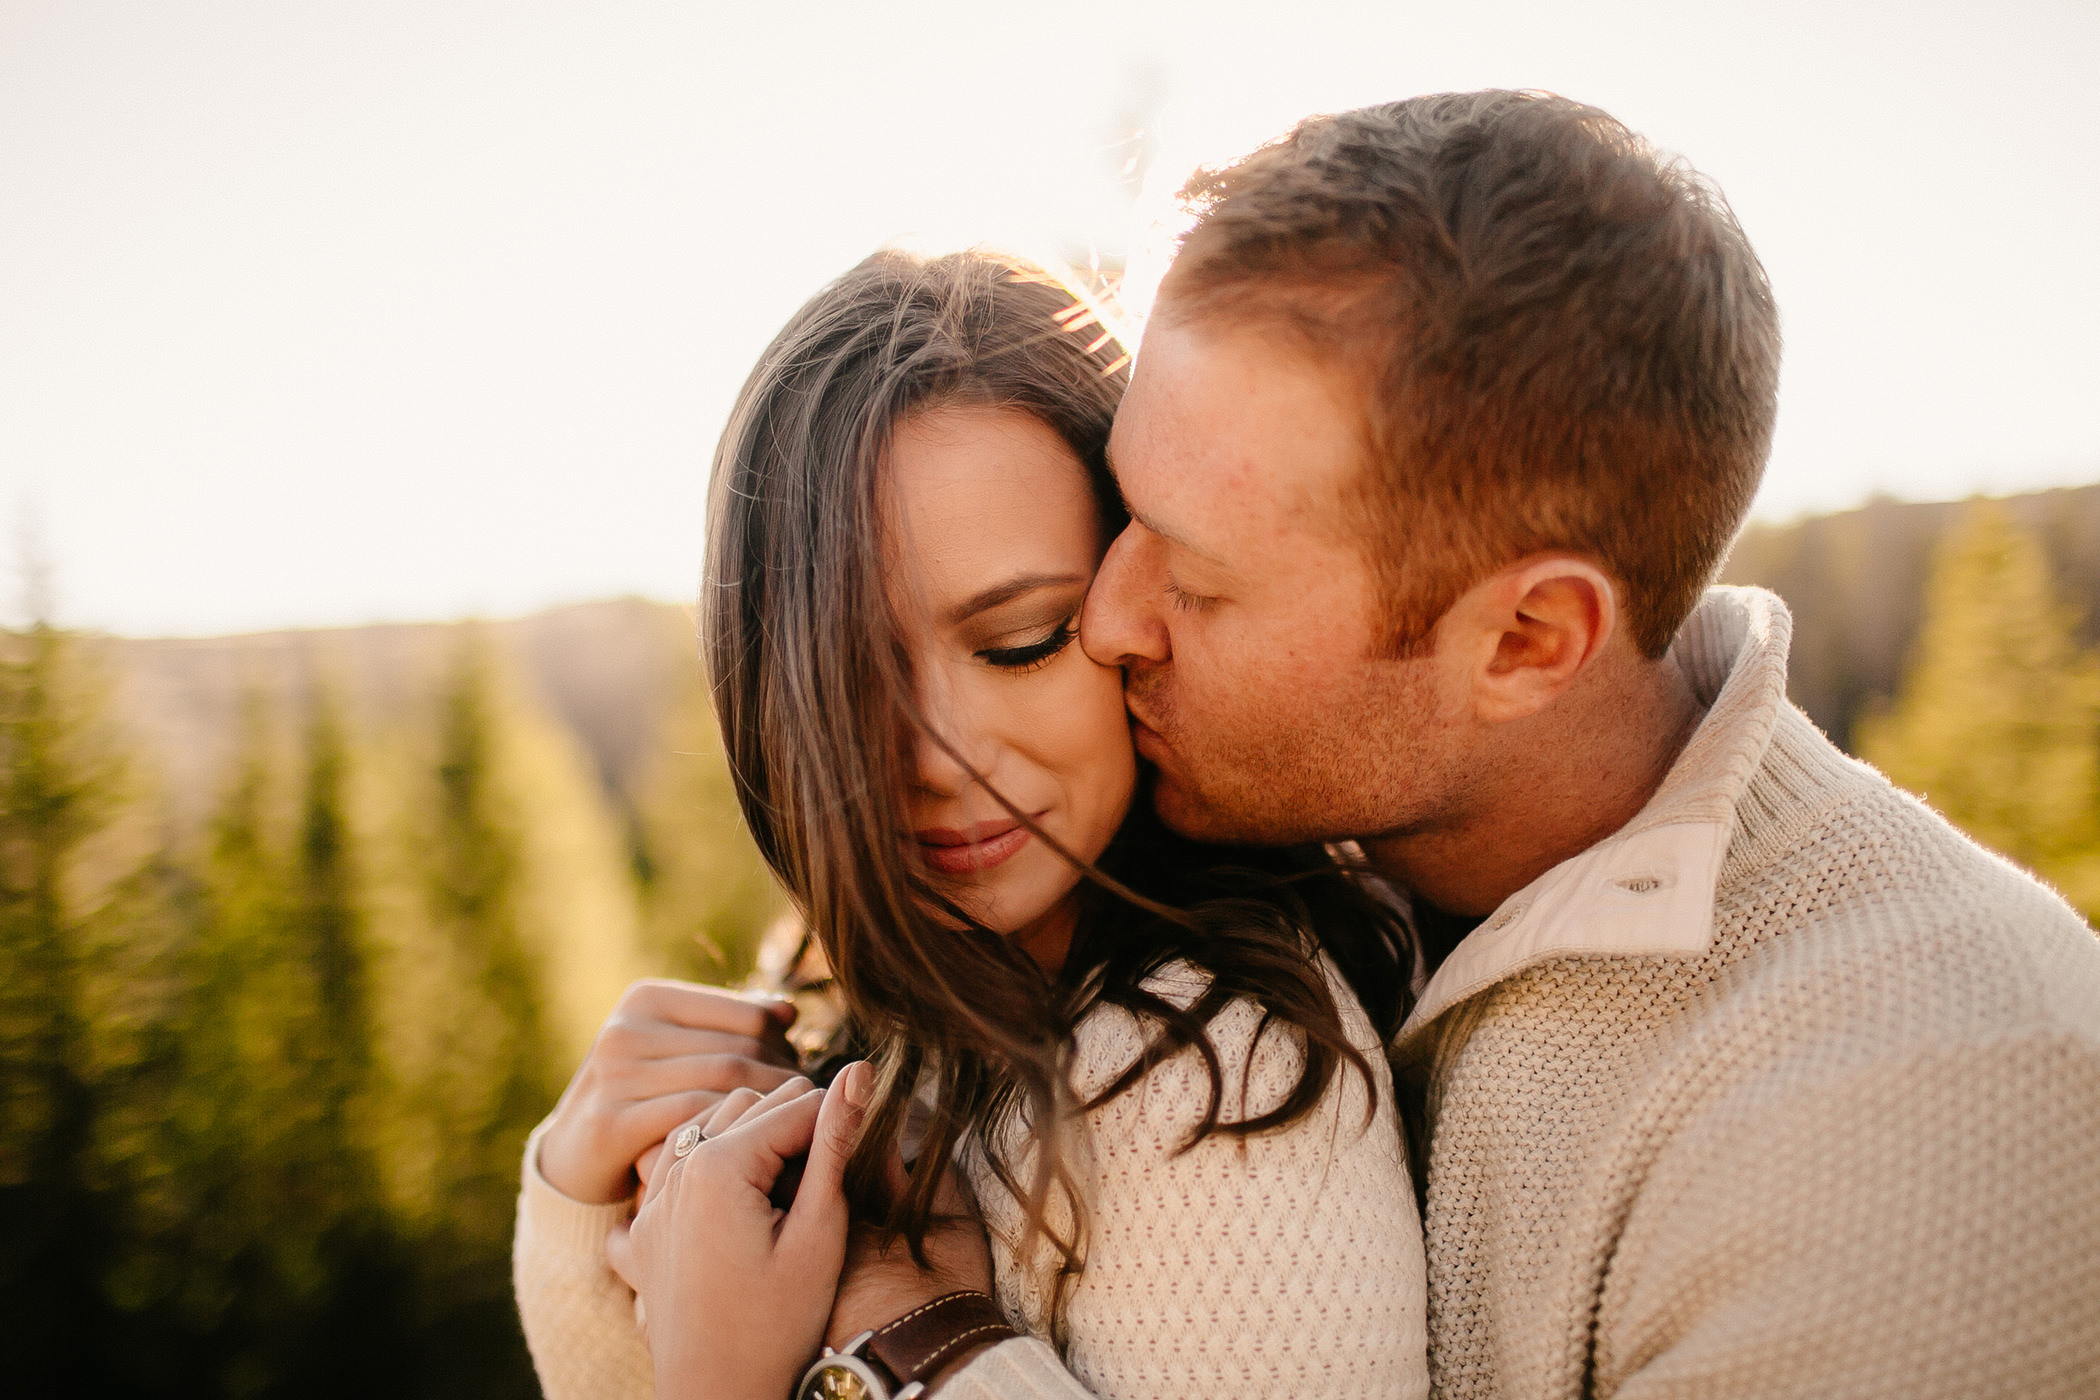 Liz Osban Photography Cheyenne Wyoming Ft Collins Colorado Estes Park Rocky Mountain National Park Photographer Grand Teton Jacksonhole Iceland Destination Elopement Adventure Wedding Elope10.jpg